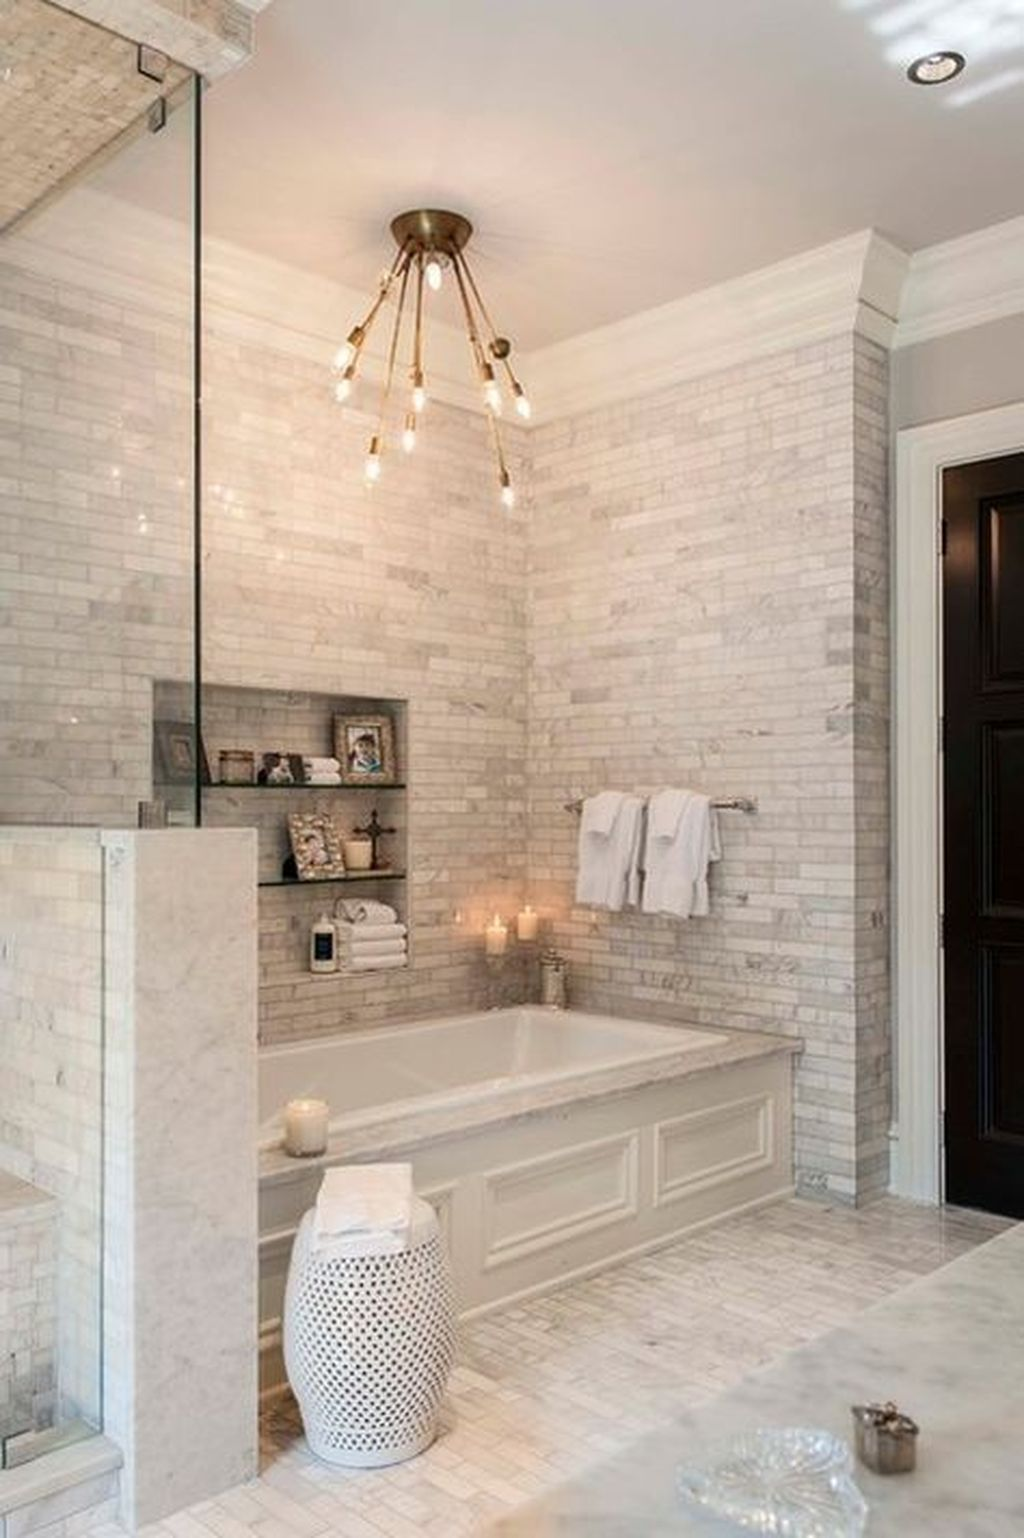 10 Stunning Transitional Bathroom Design Ideas To Inspire You: 28 Stunning Master Bathroom Ideas